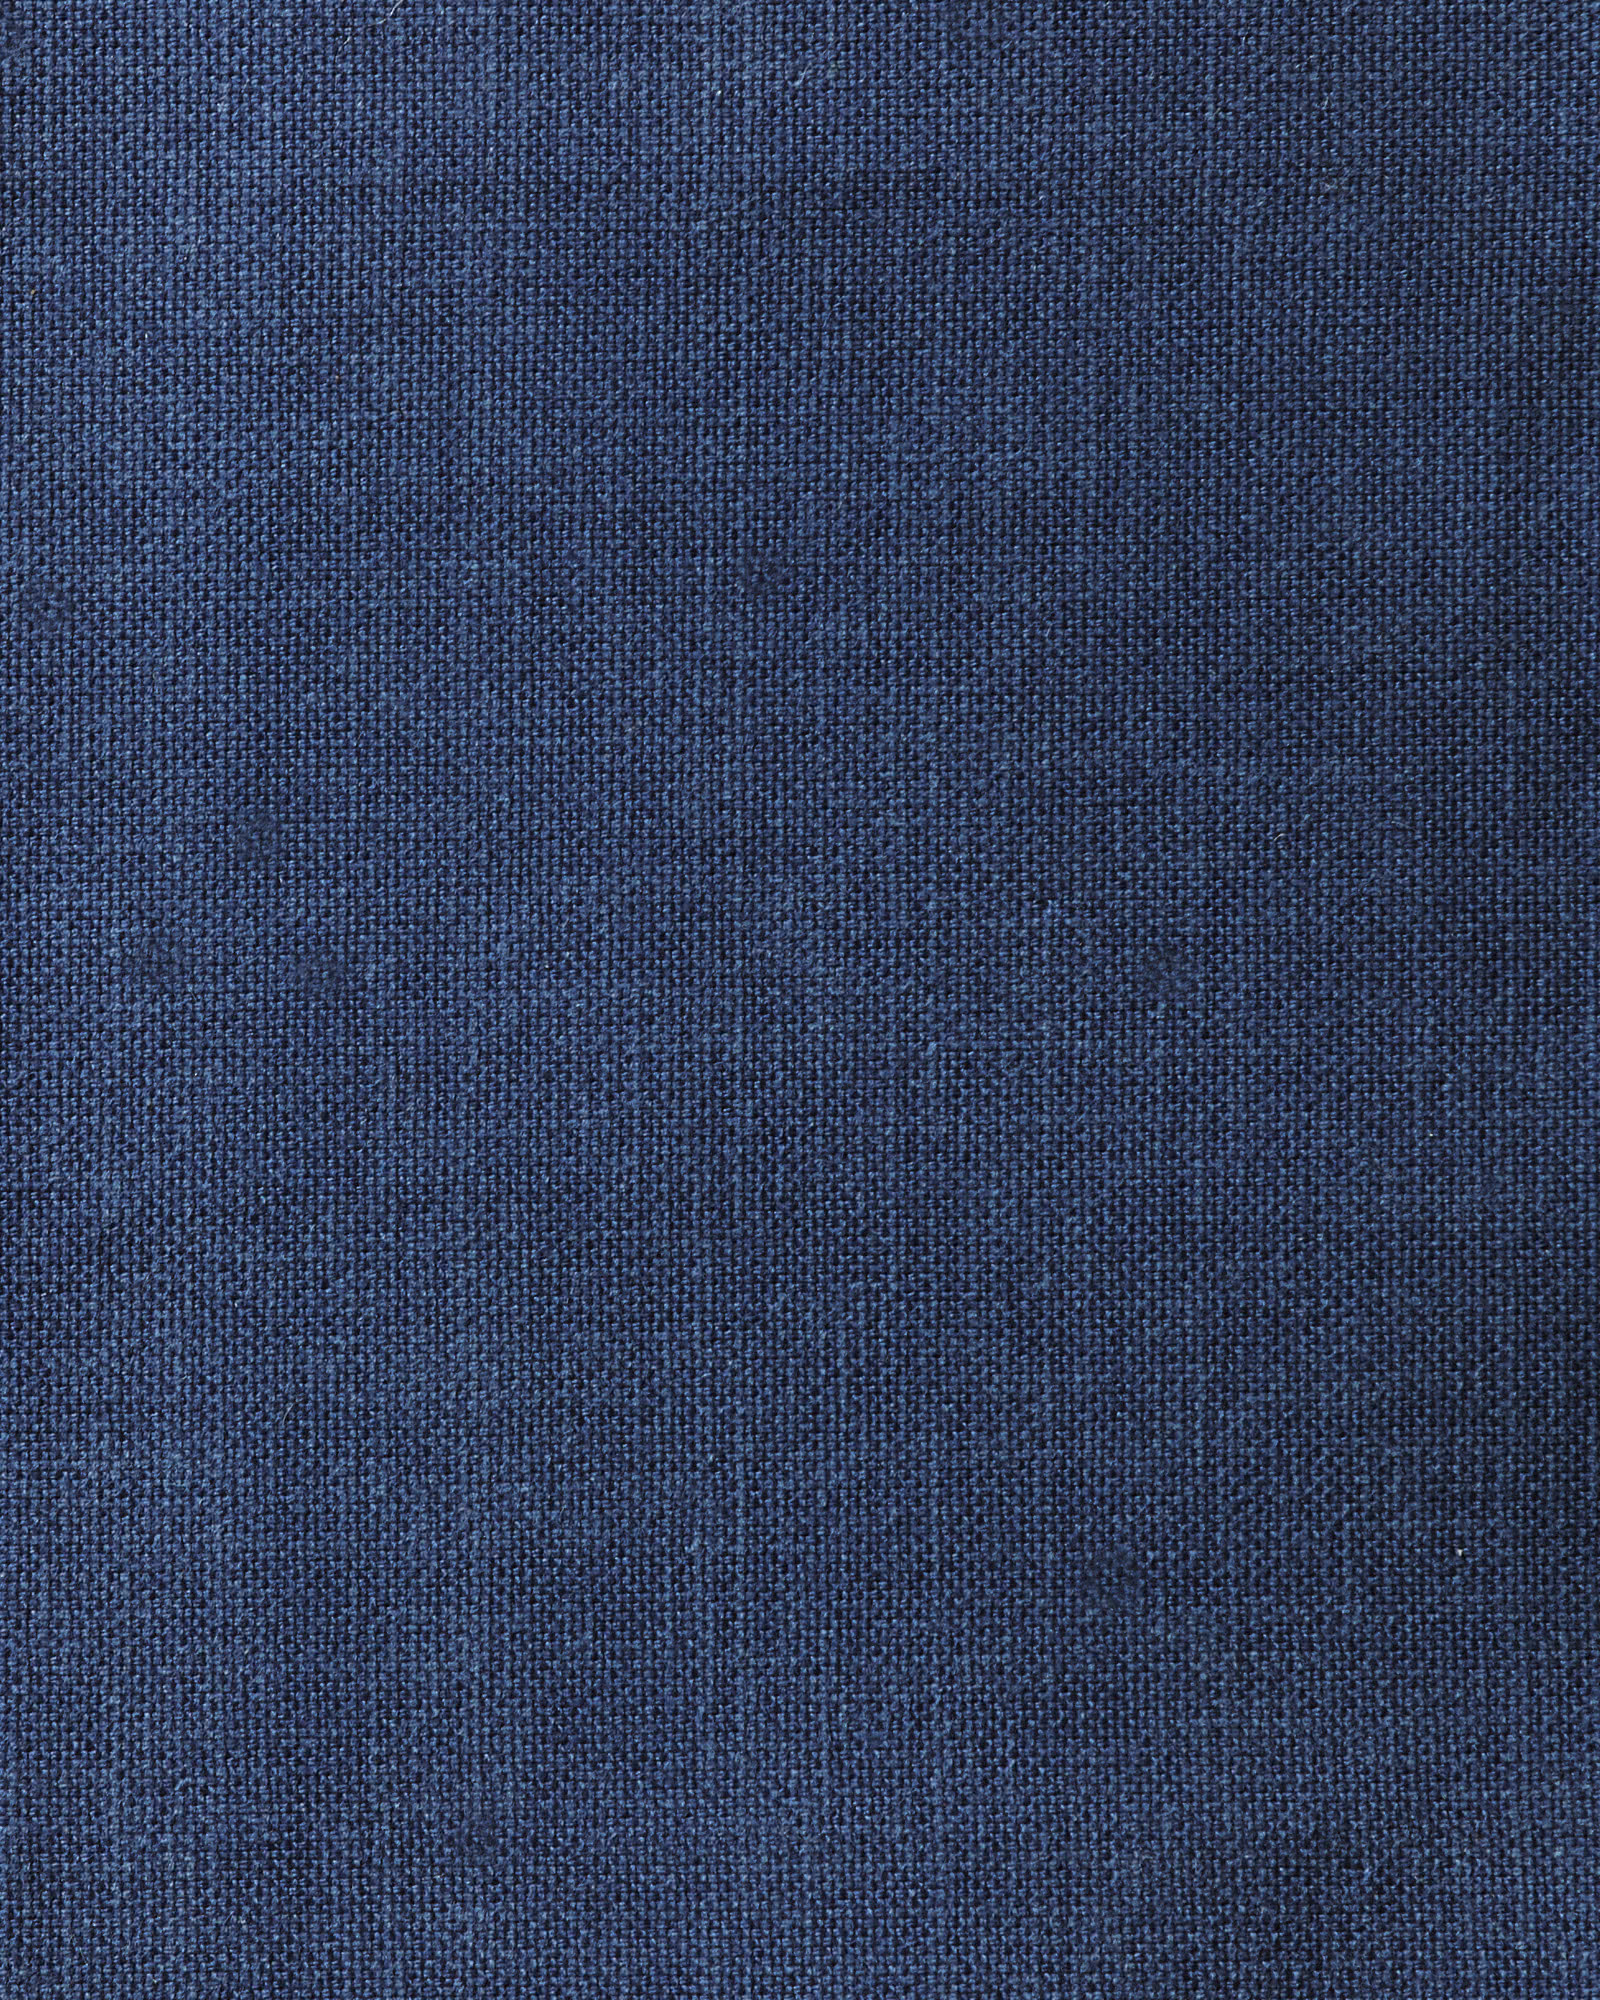 Brushed Cotton Canvas, Denim